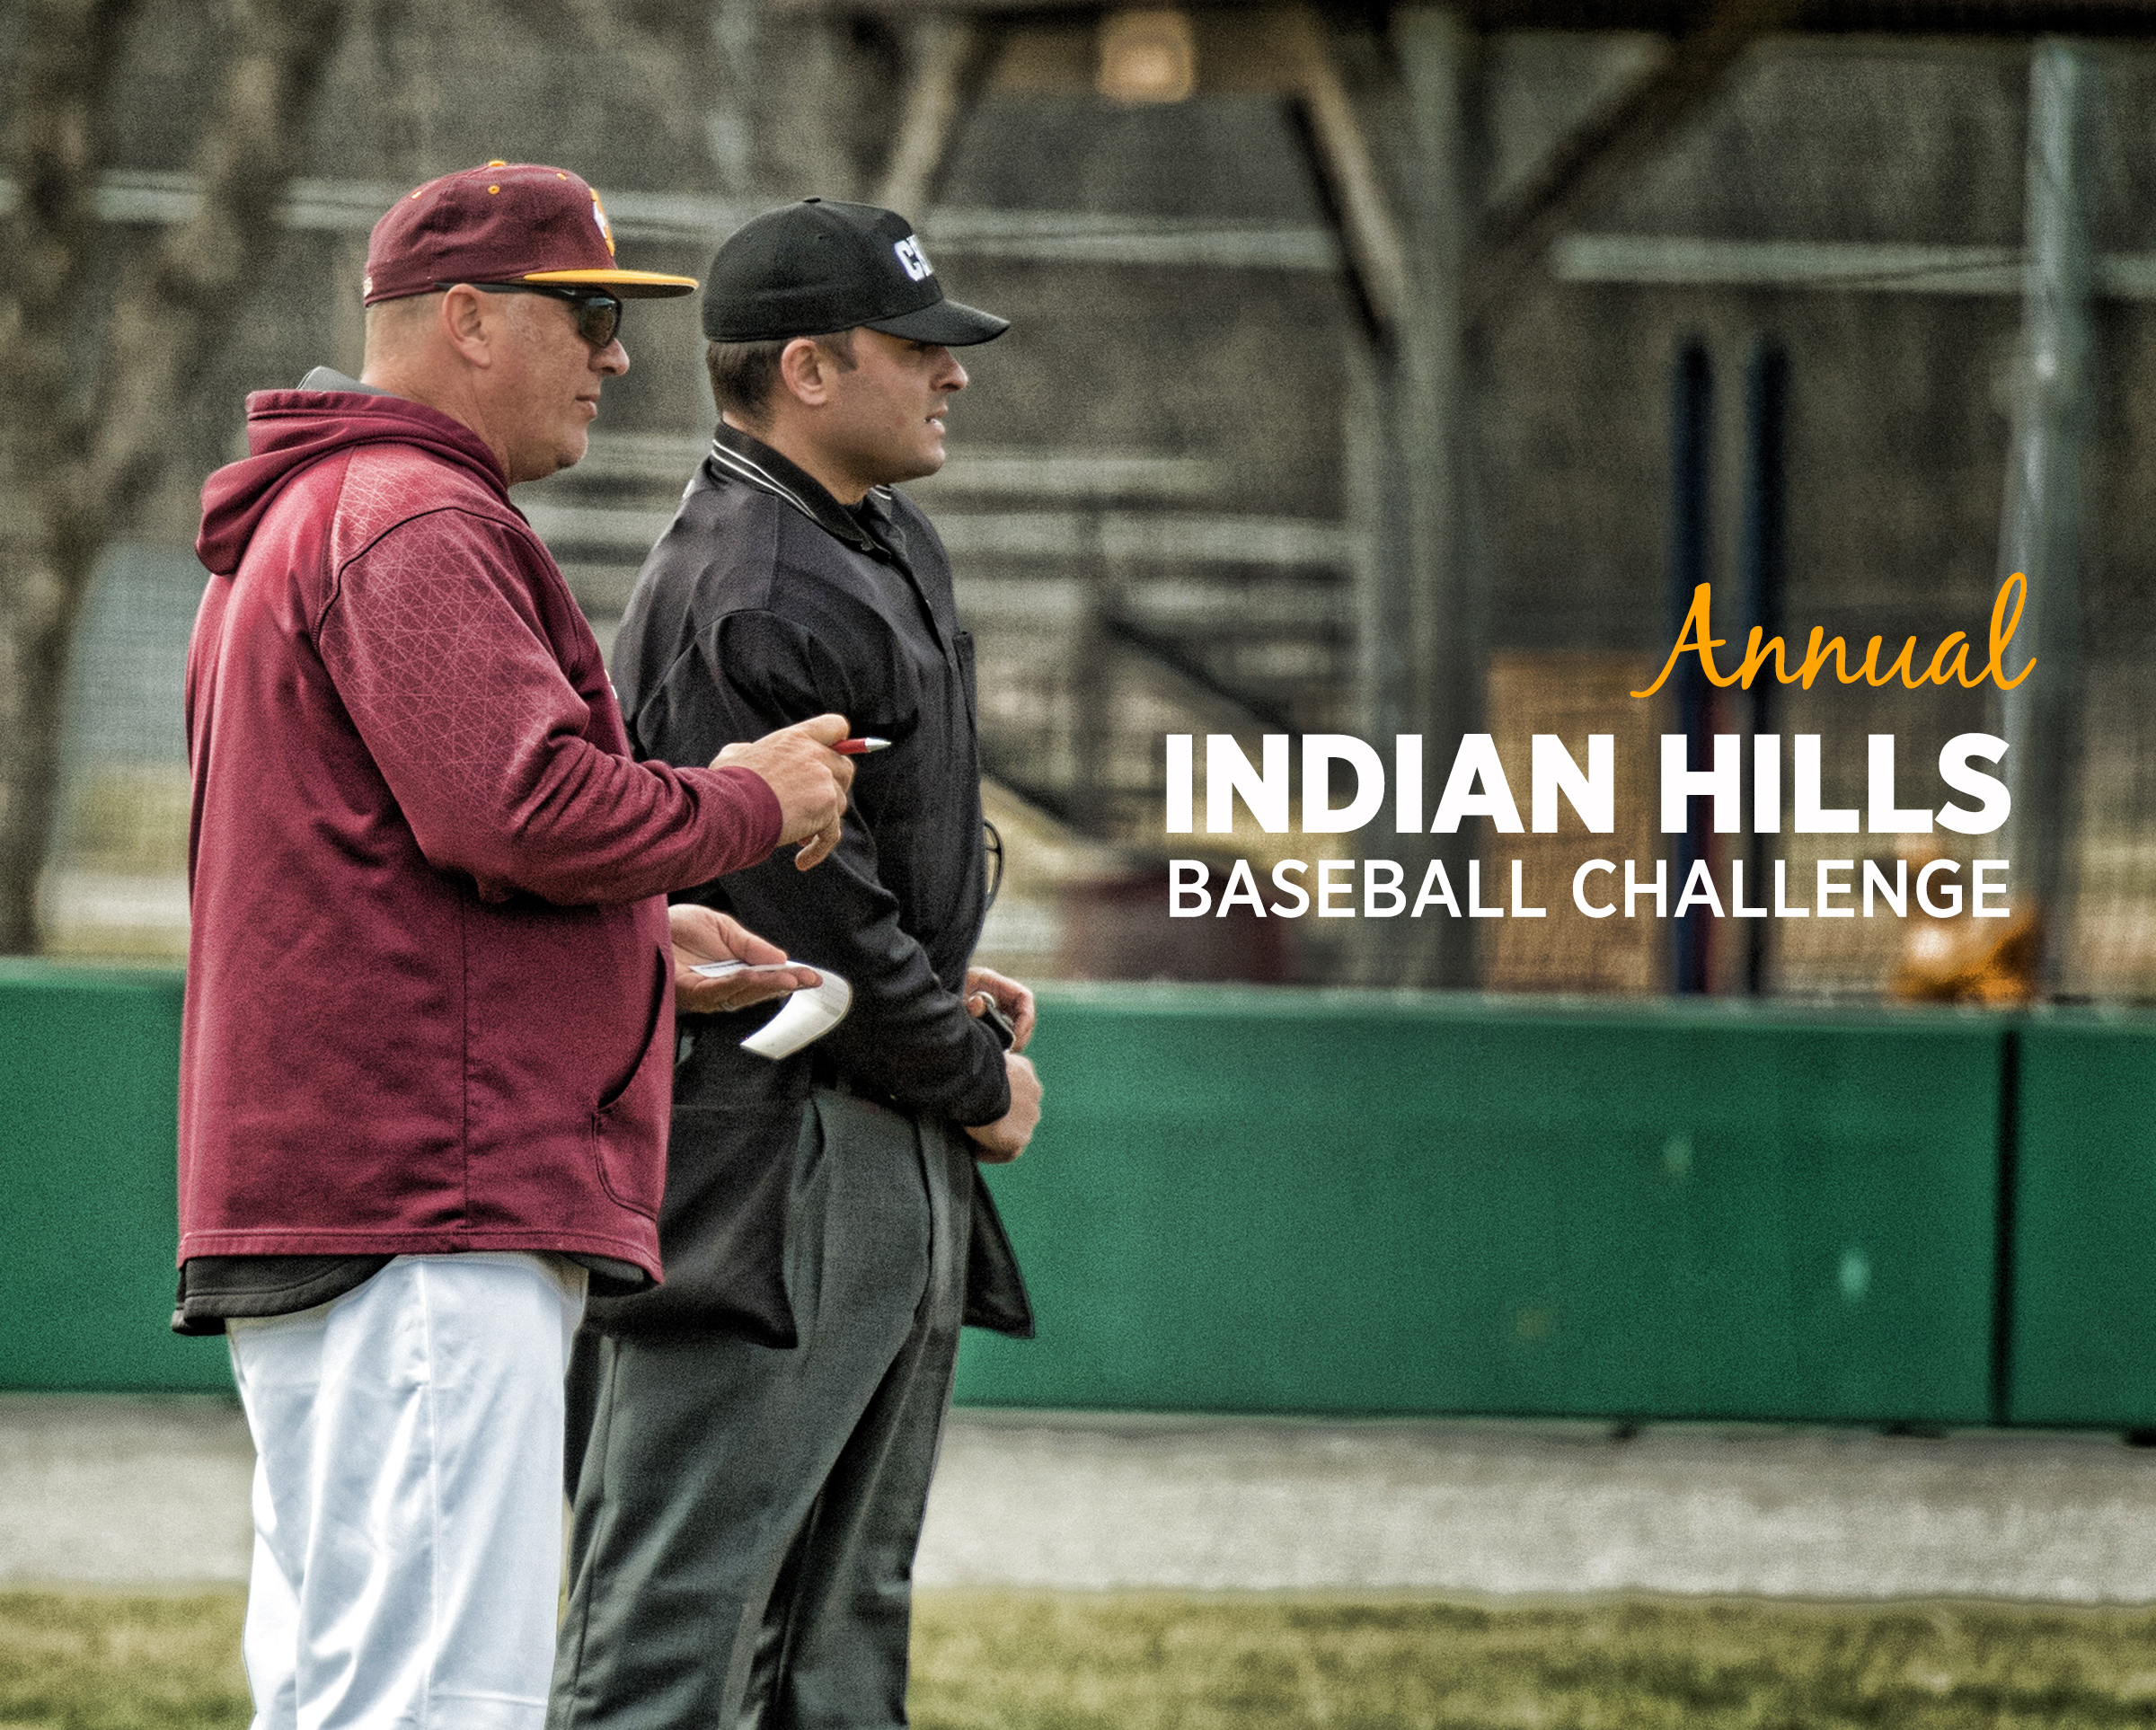 Show the Indian Hills Baseball Team your support!! We are currently conducting our Annual Indian Hills Community College Baseball Challenge to help generate financial support for our program. Our team spends many long hours preparing to be the best we can be and would greatly appreciate your support. 100% of your donation will go to helping our team achieve our goals. Every little bit helps! Donate Now!